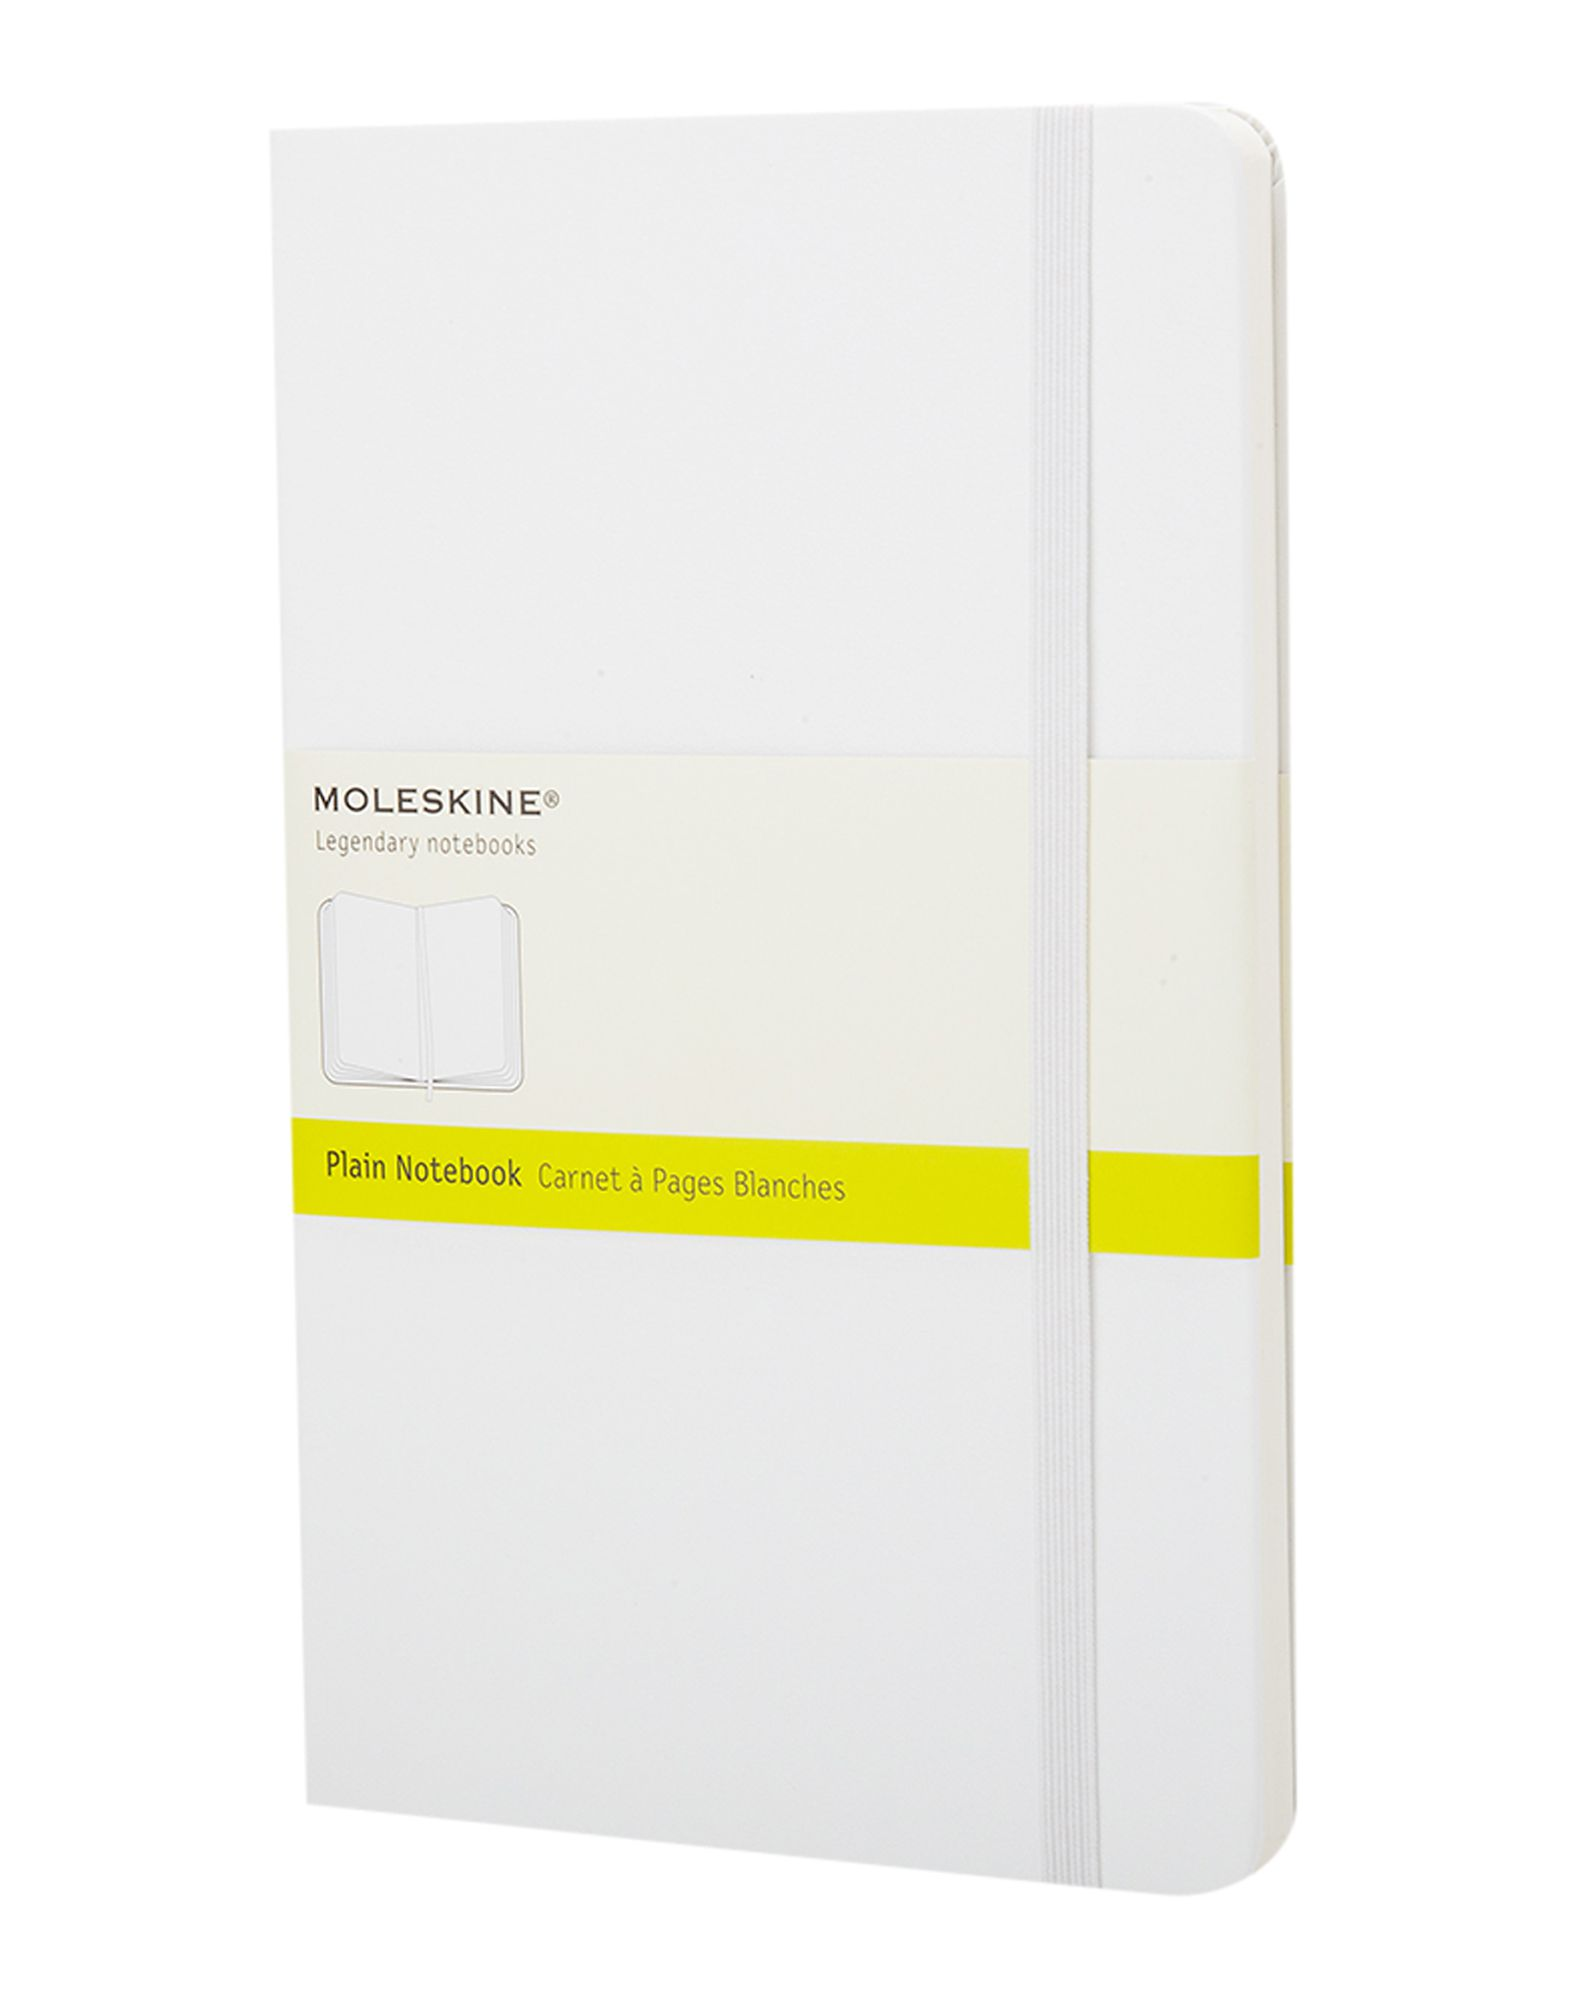 MOLESKINE Notebooks  Item 56002493 1